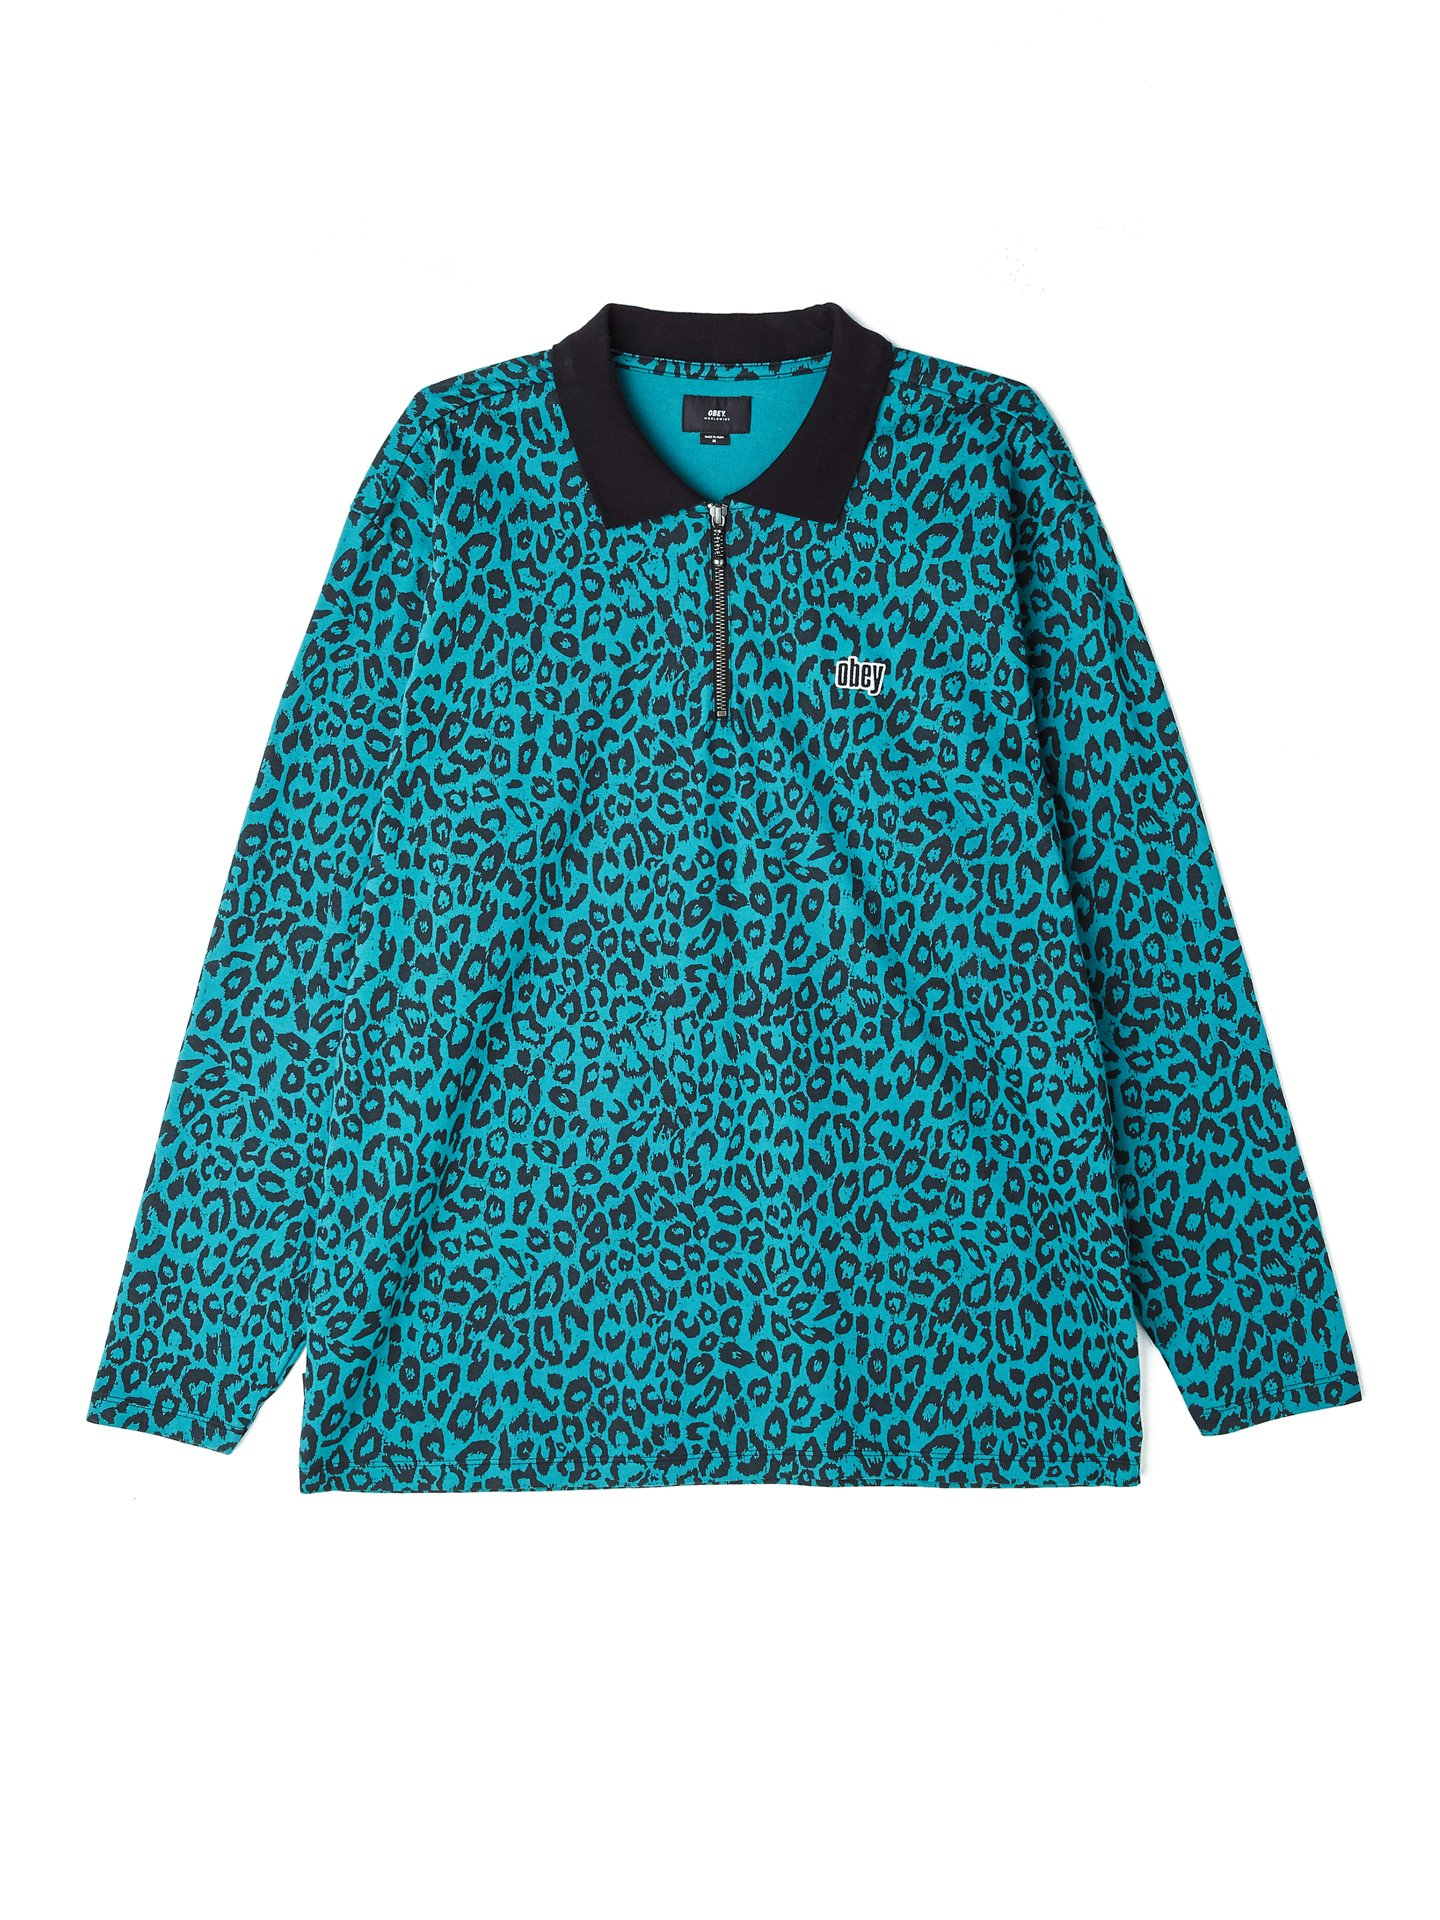 325a2817 Gimme Classic Long Sleeve Polo - Obey Clothing UK